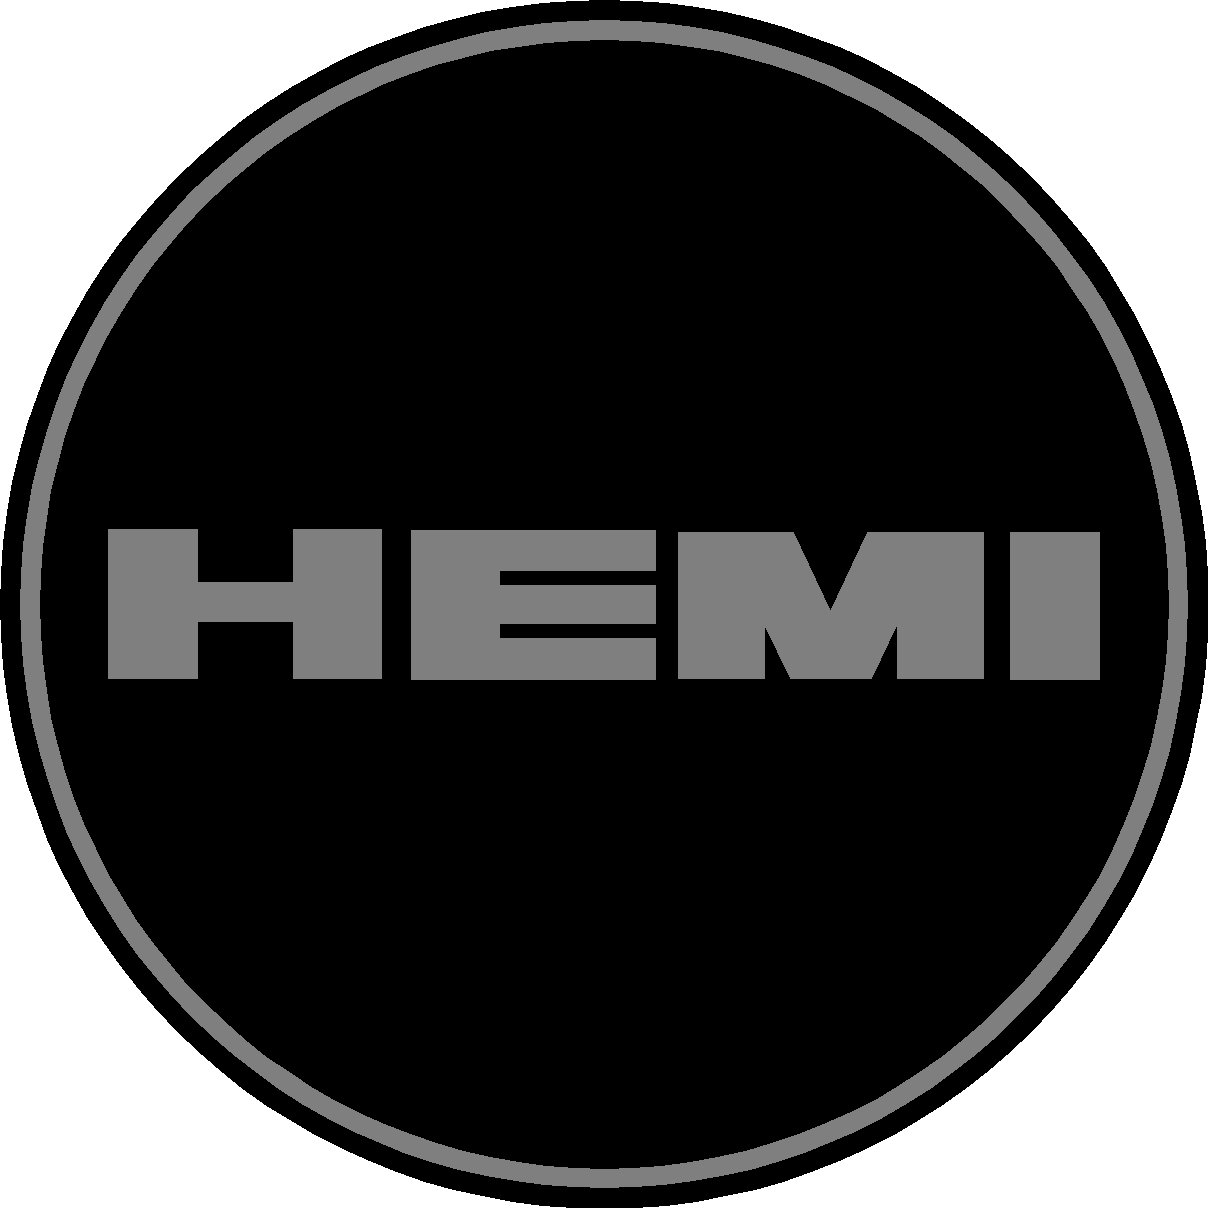 Hemi Black and Gray Replacement Decal Sticker 6 Piece Set 1.75